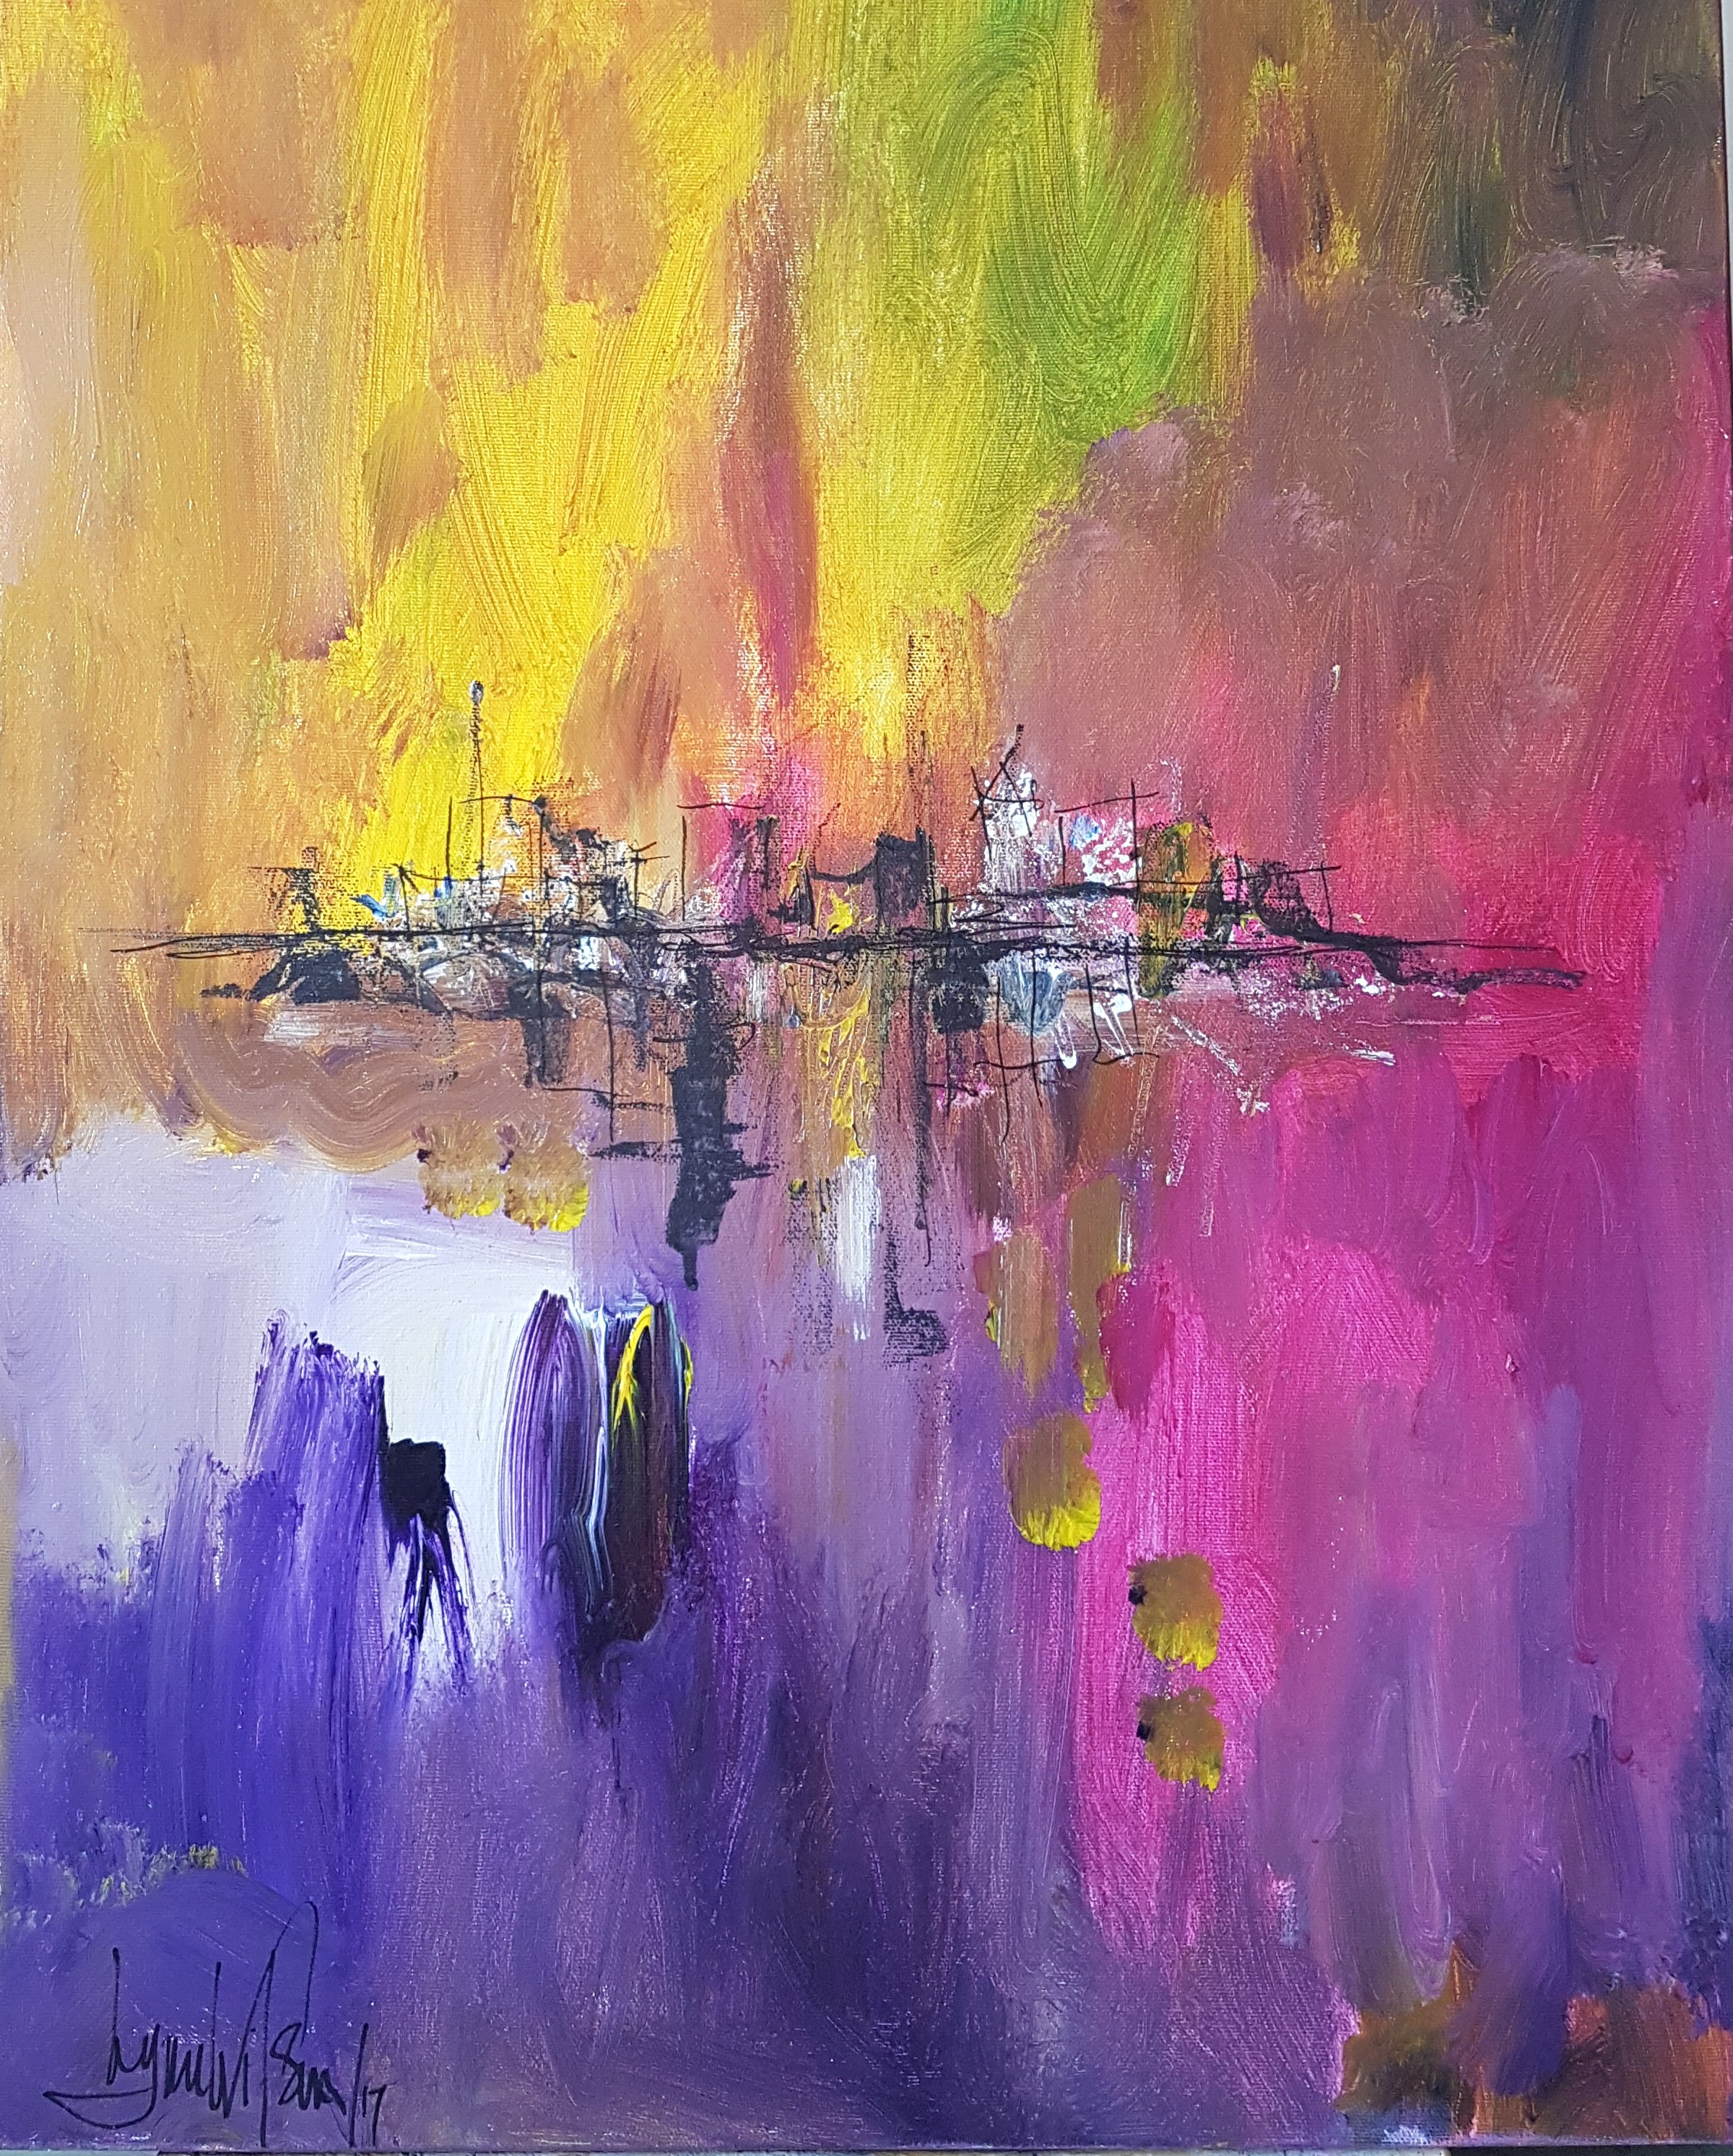 City Shoreline Oct 2017 painted in live demo at King Heritage Centre.jpg